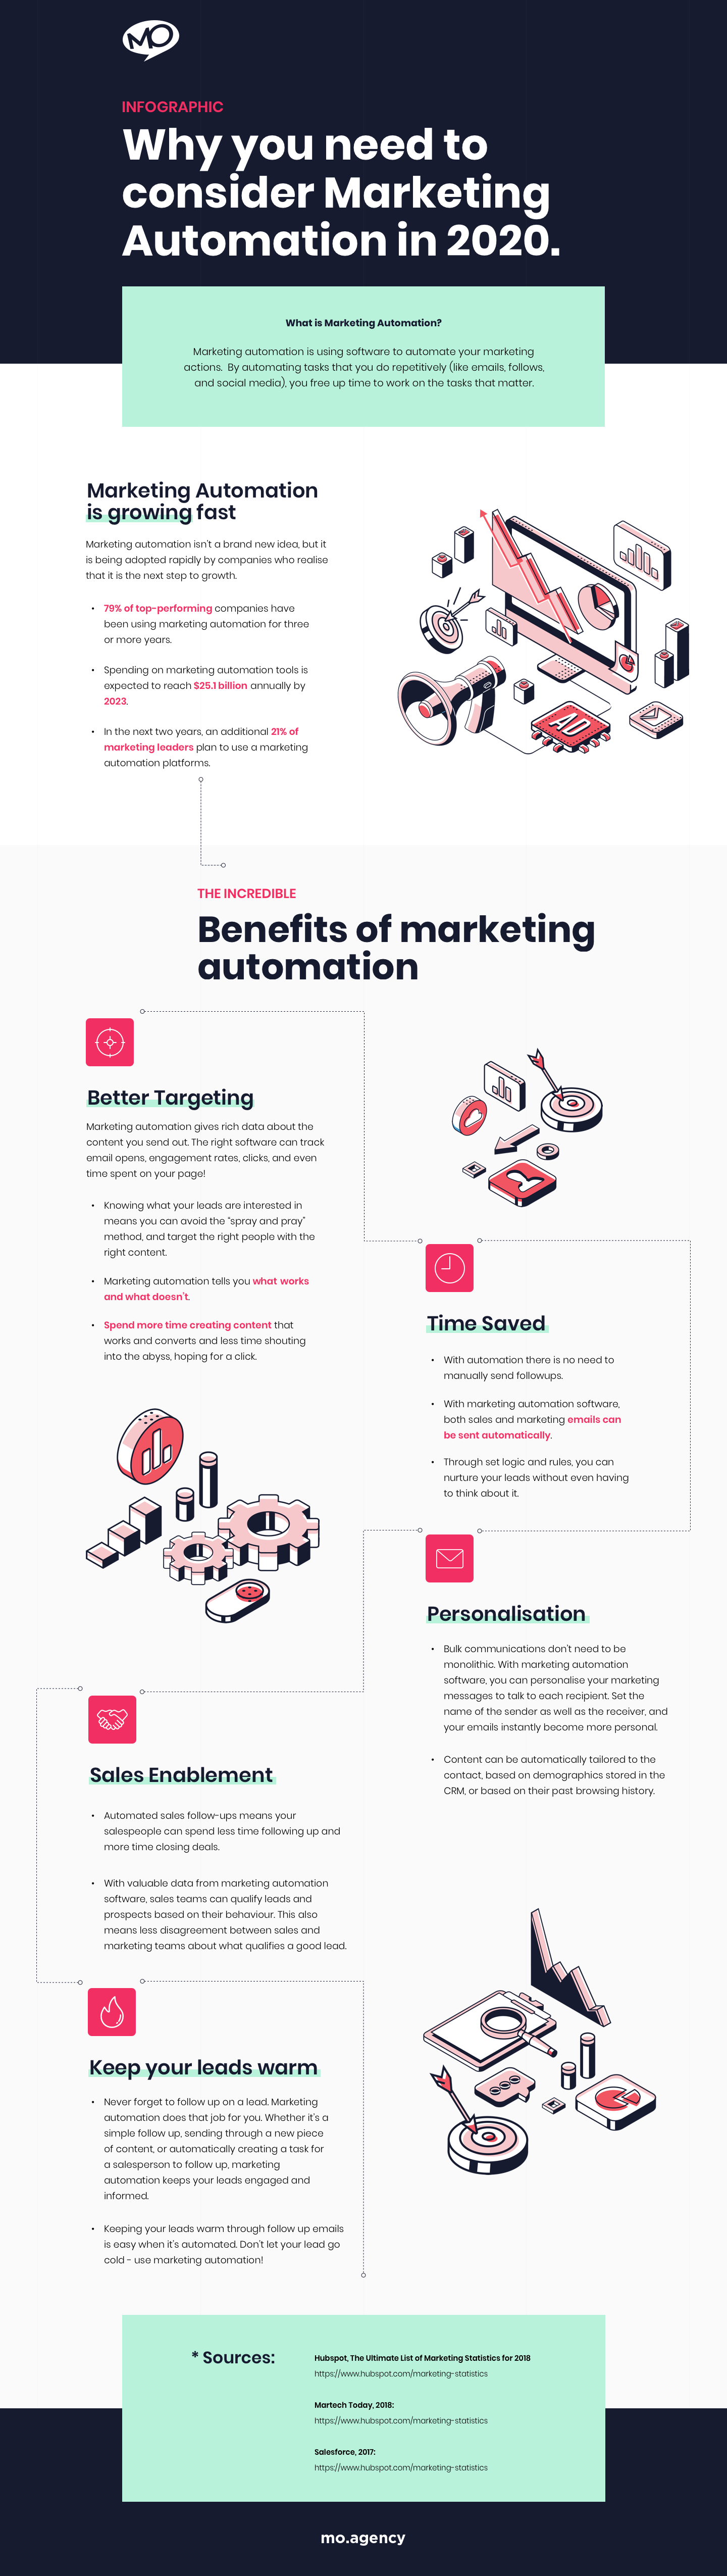 MO - Marketing Automation - Infographic - No Link - 20200306